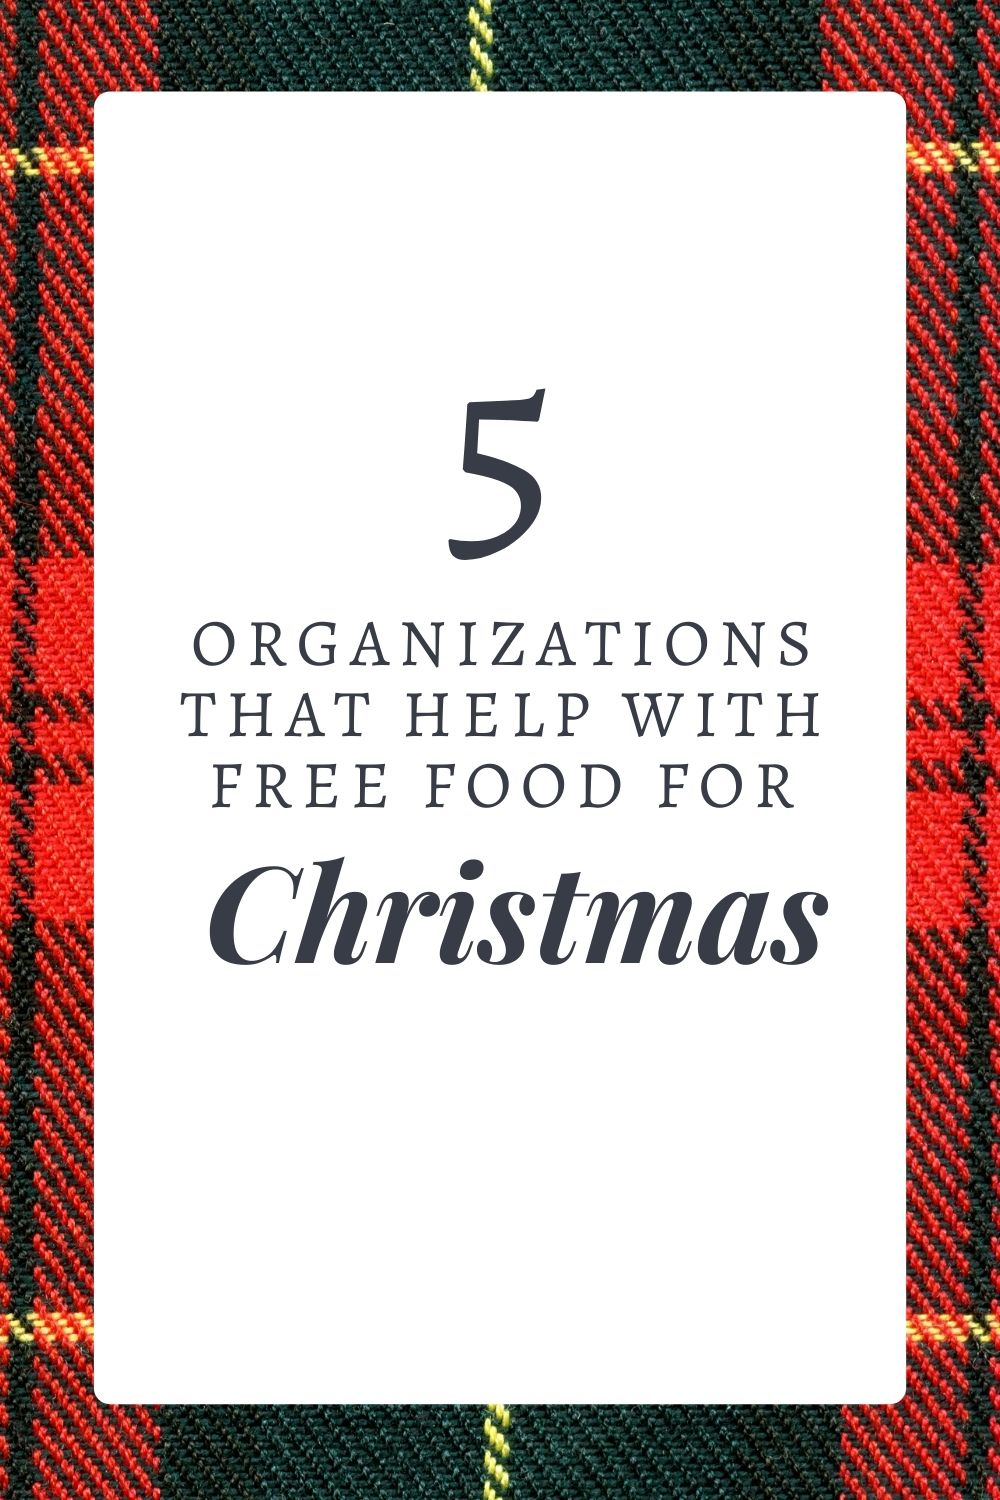 5 organizations that help with free food for christmas